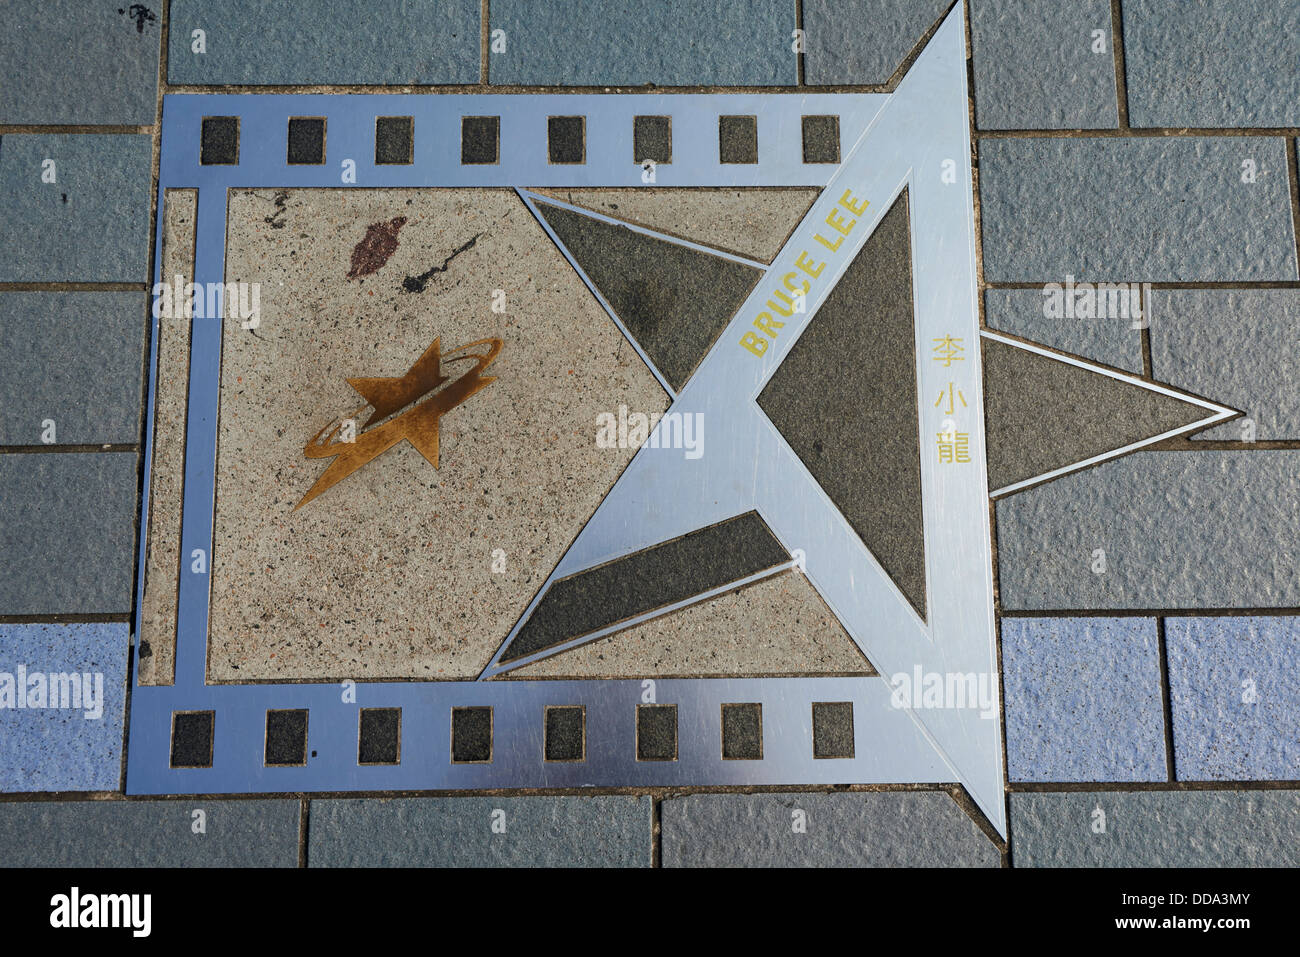 China, Hong Kong, Kowloon, Avenue of Stars, Brunce Lee statue - Stock Image